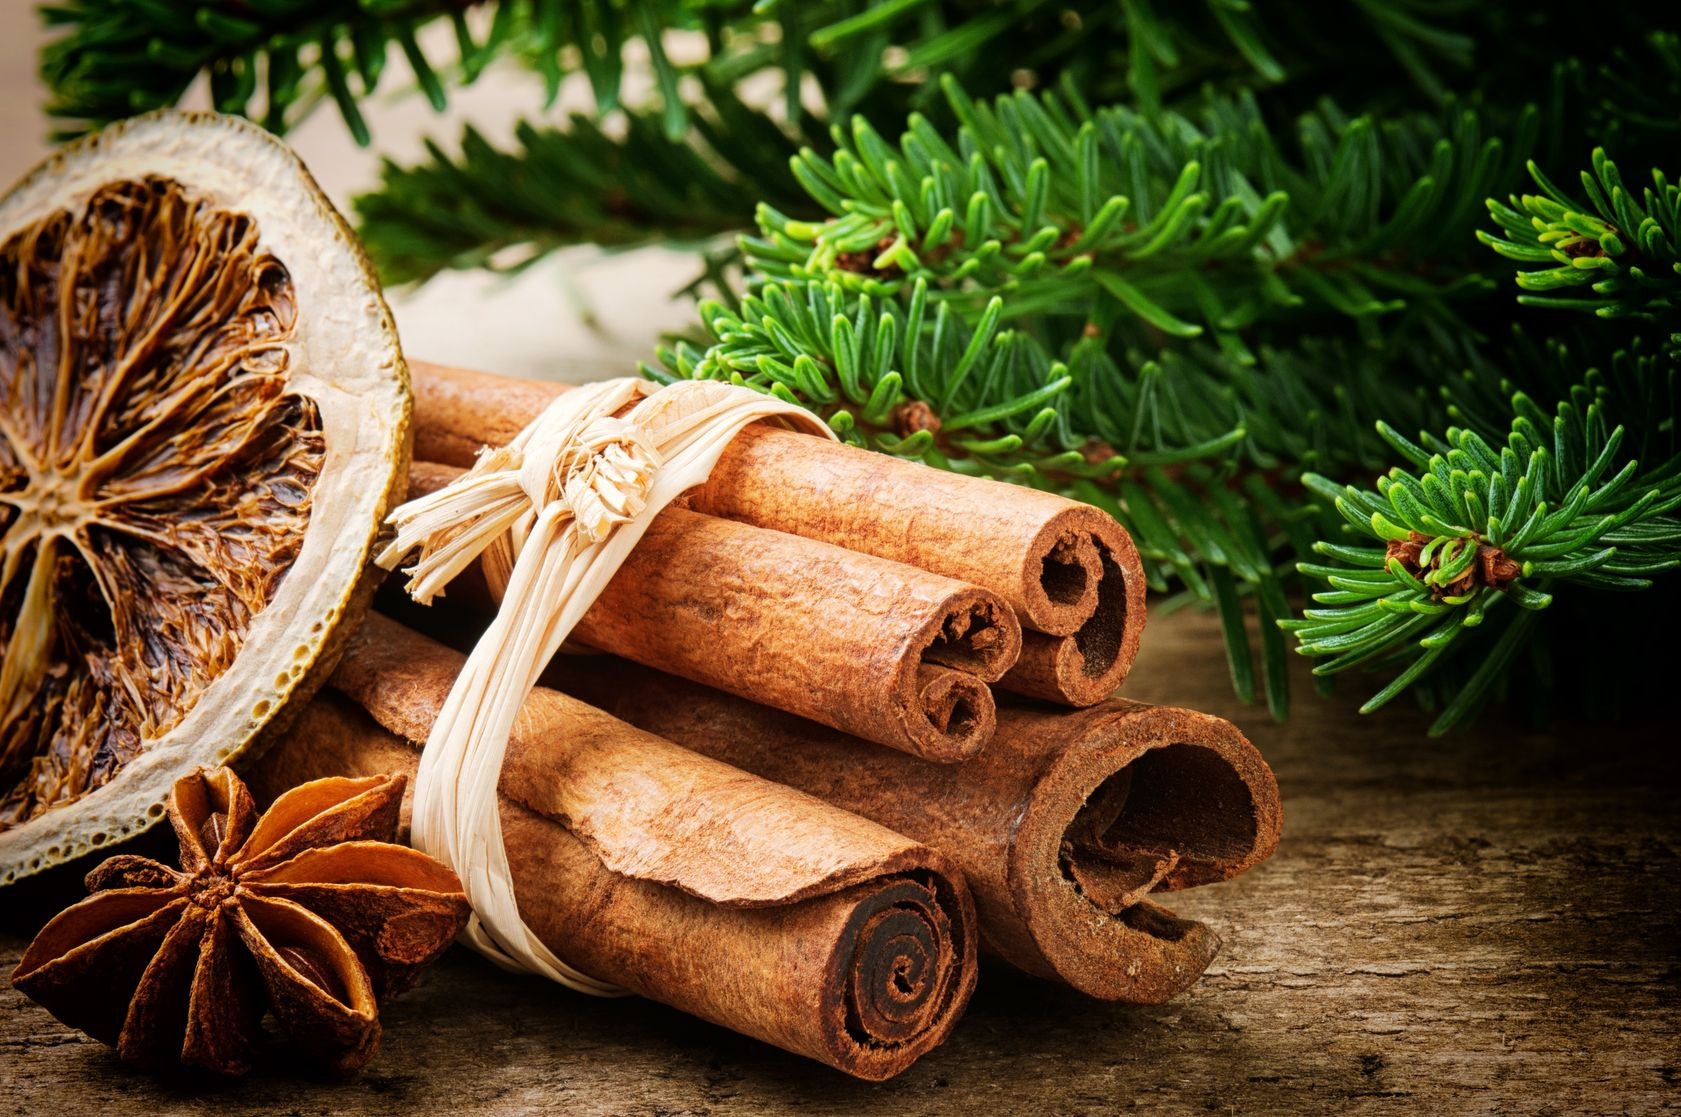 6 Reasons To Cook With Cinnamon